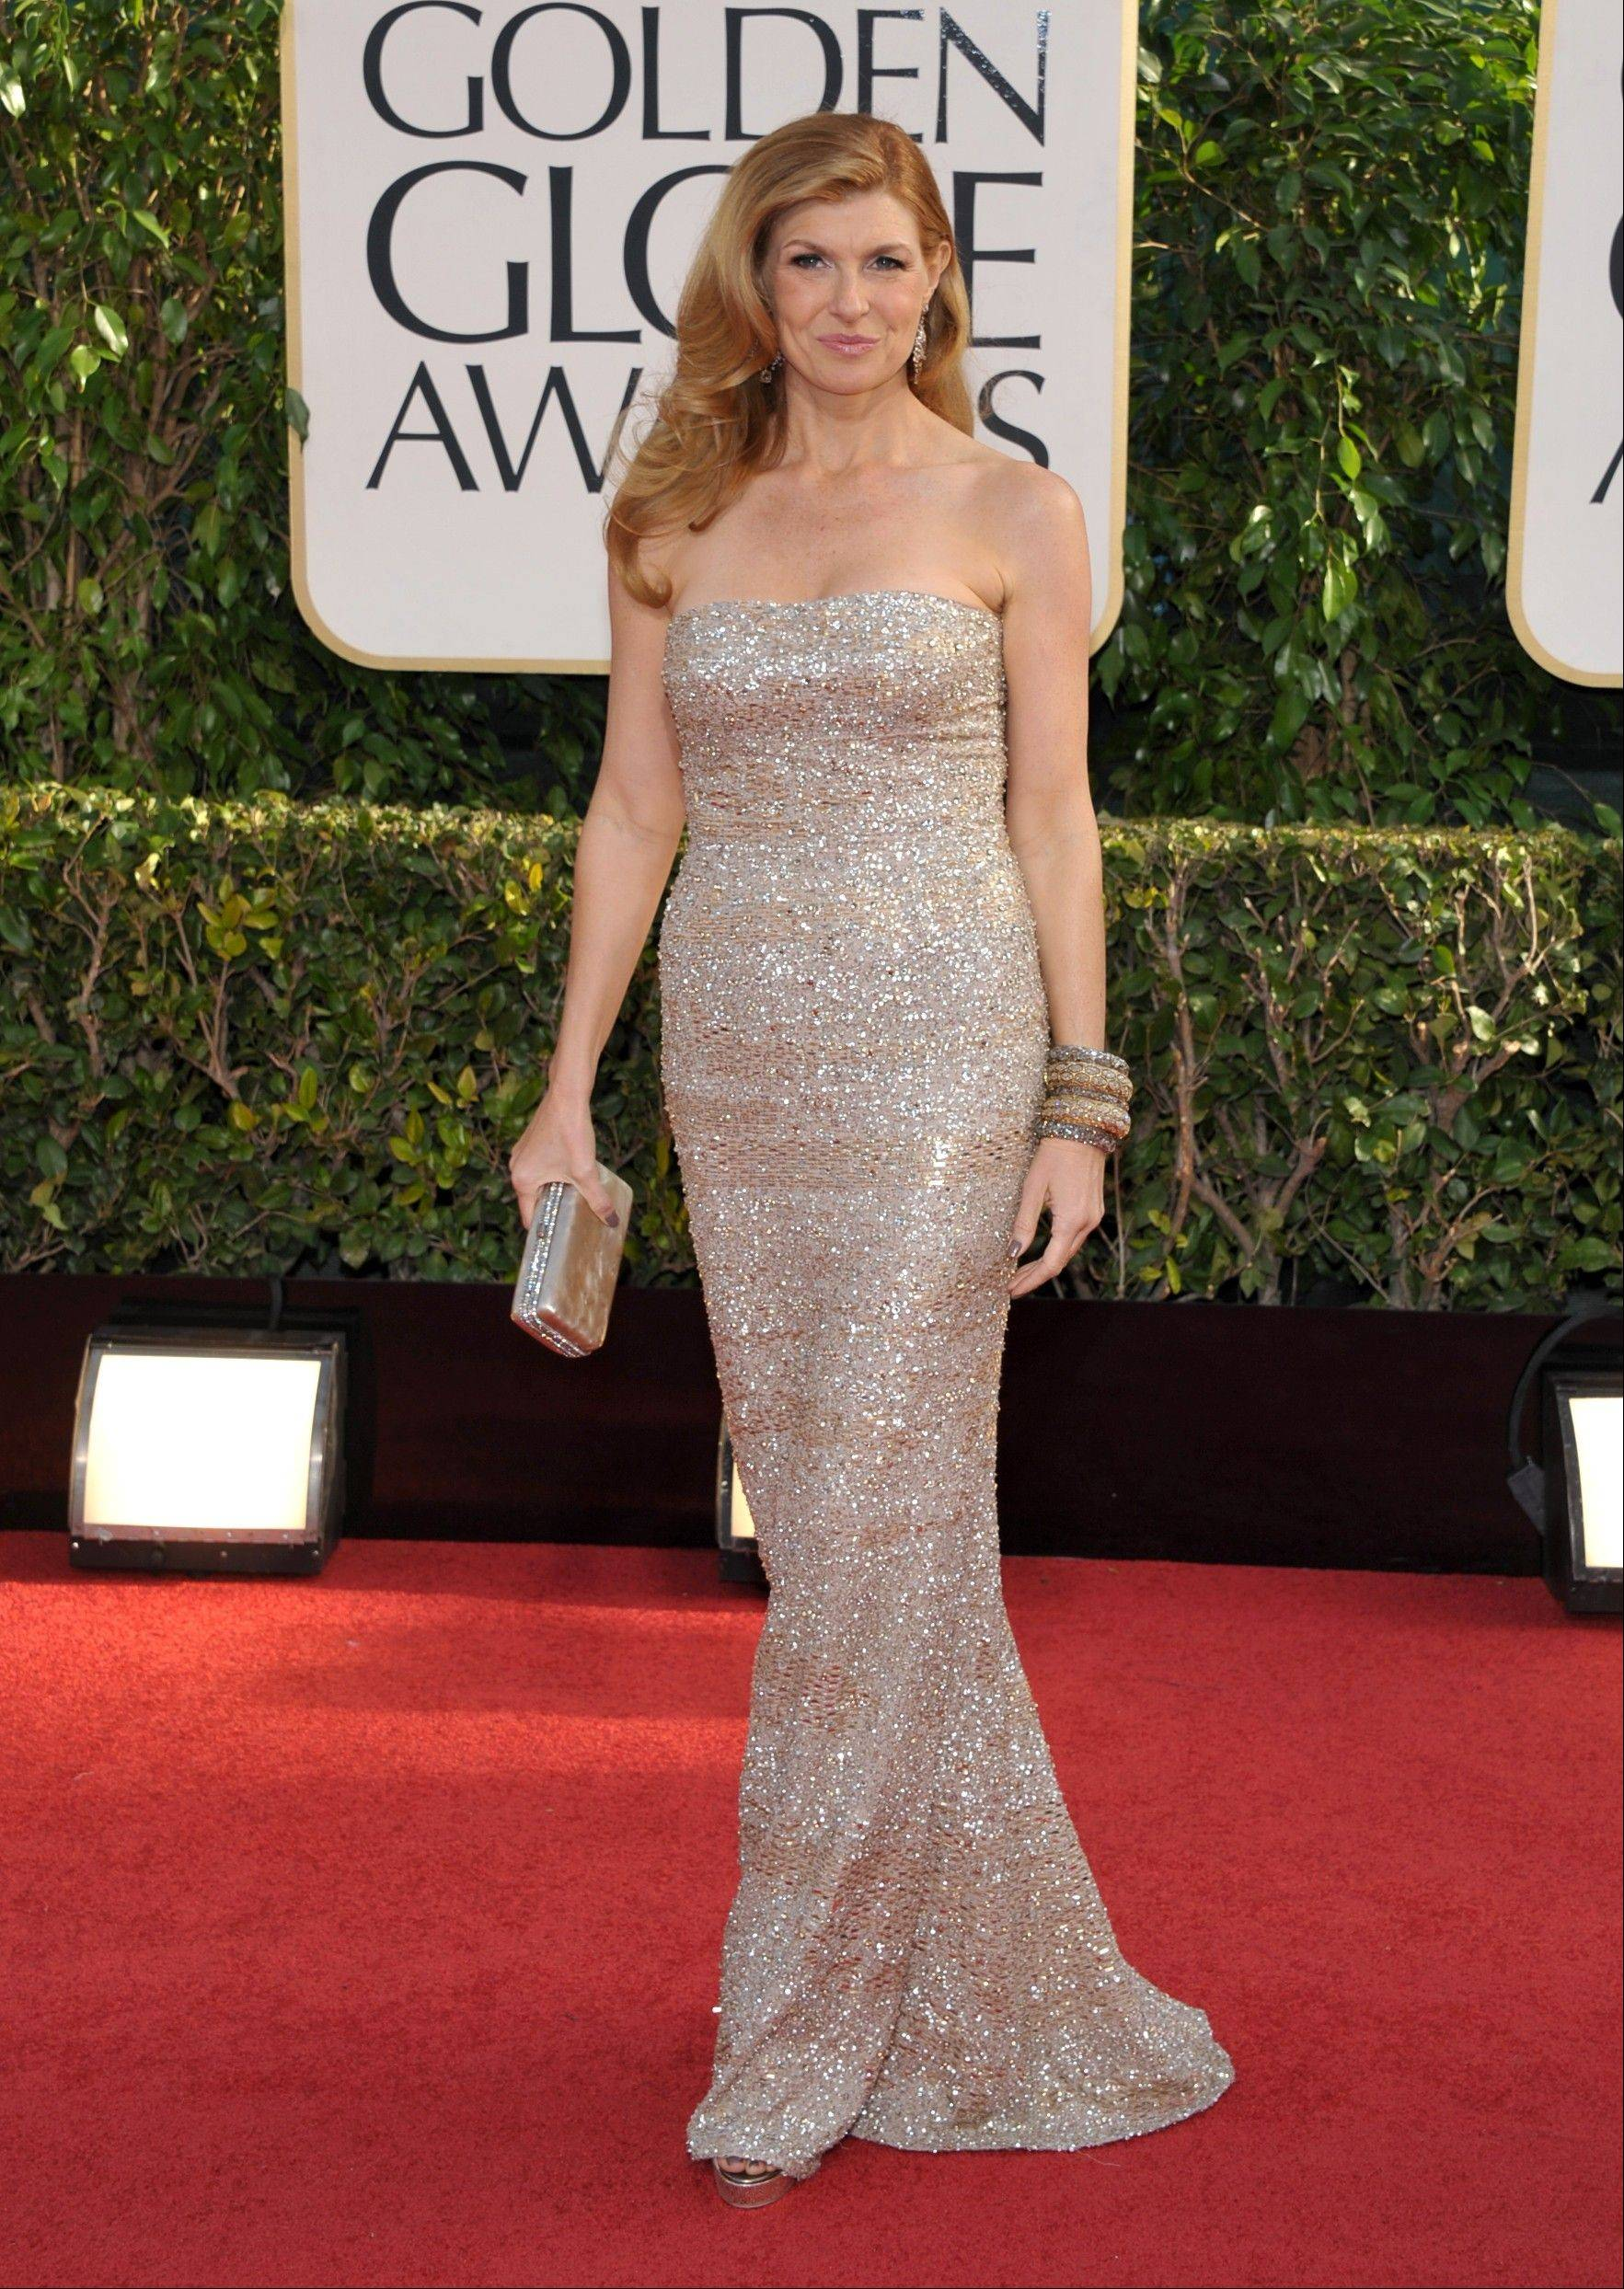 Connie Britton arrives at the 70th Annual Golden Globe Awards at the Beverly Hilton Hotel on Sunday Jan. 13, 2013, in Beverly Hills, Calif.